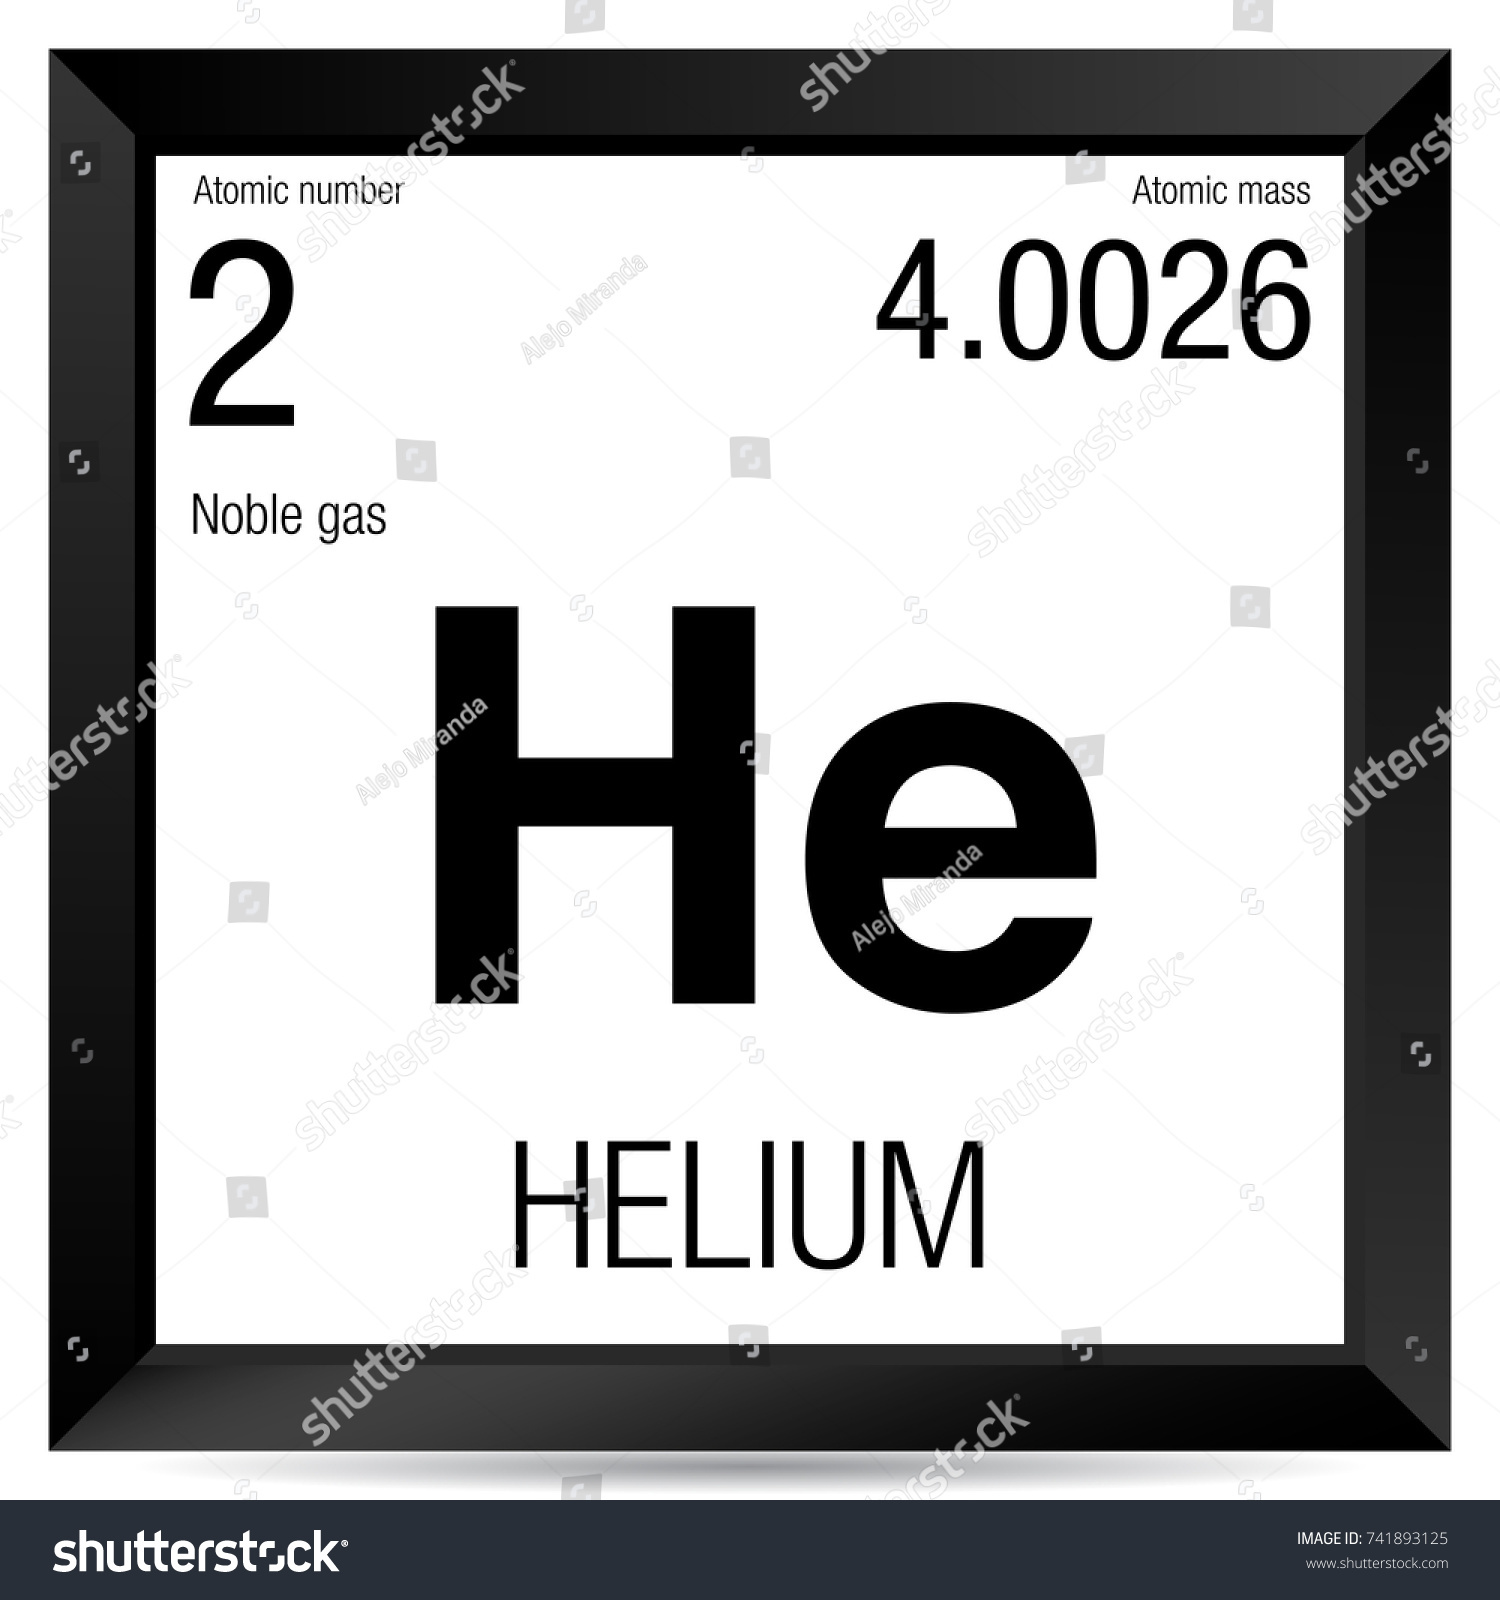 Helium symbol element number 2 periodic stock vector 741893125 helium symbol element number 2 of the periodic table of the elements chemistry buycottarizona